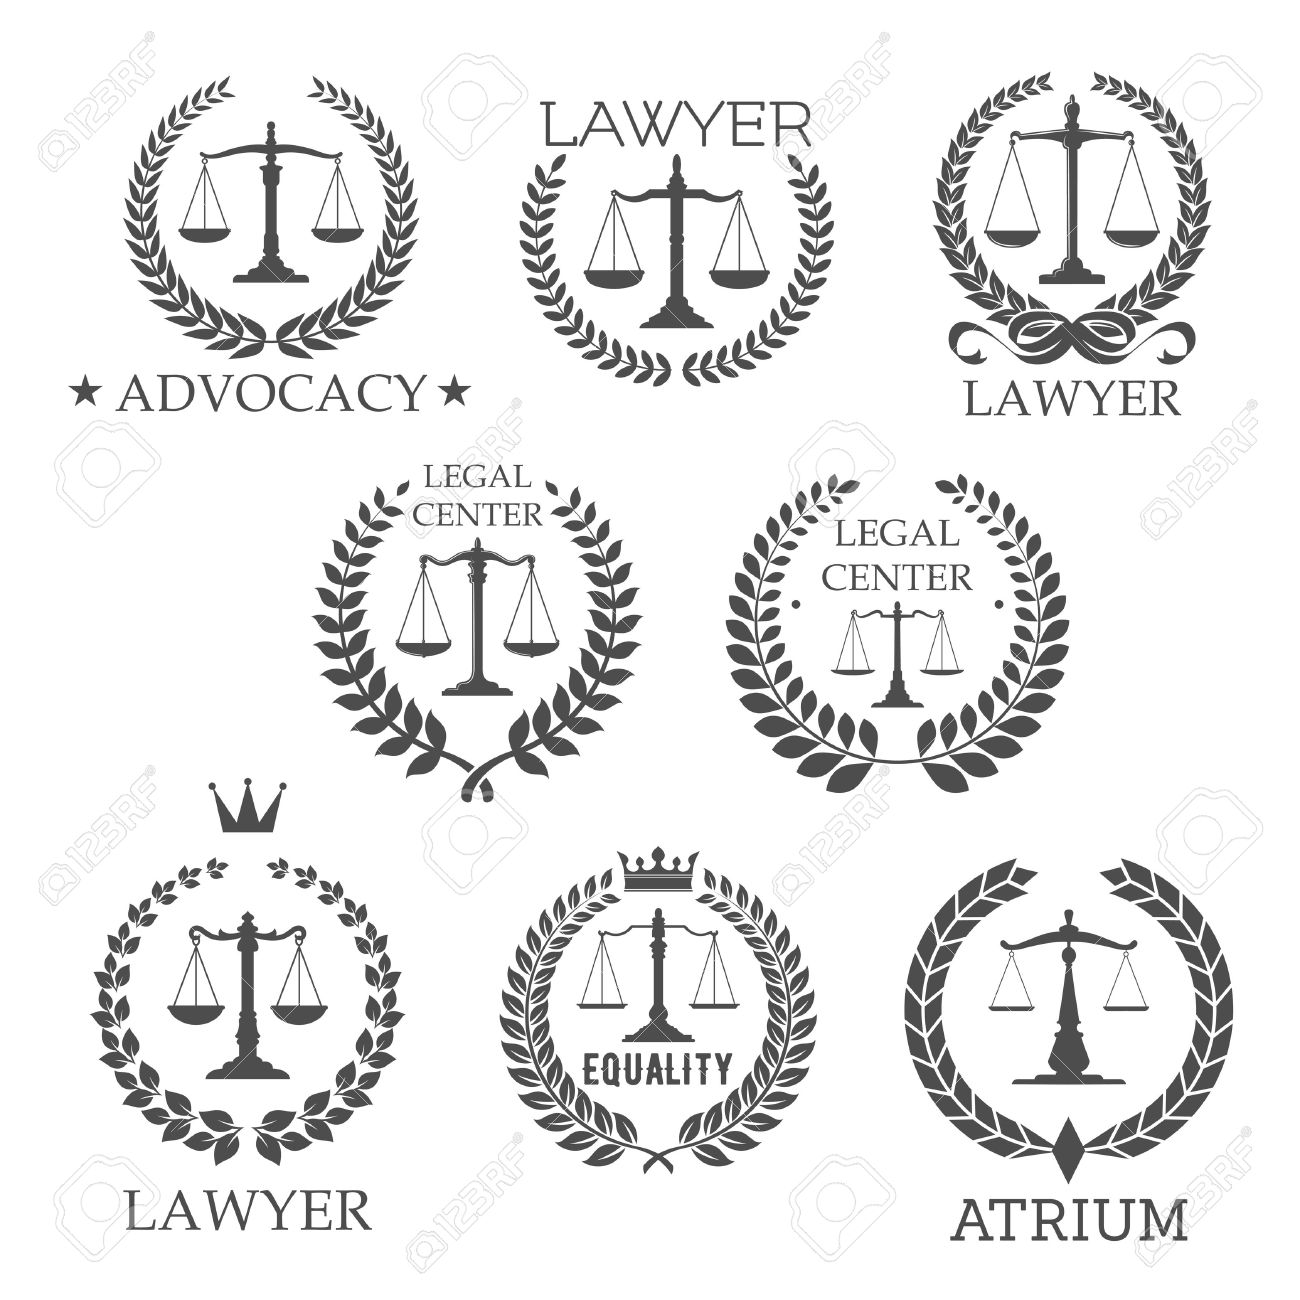 Scales Of Justice In Laurel Wreath Frames Retro Symbols For Lawyer